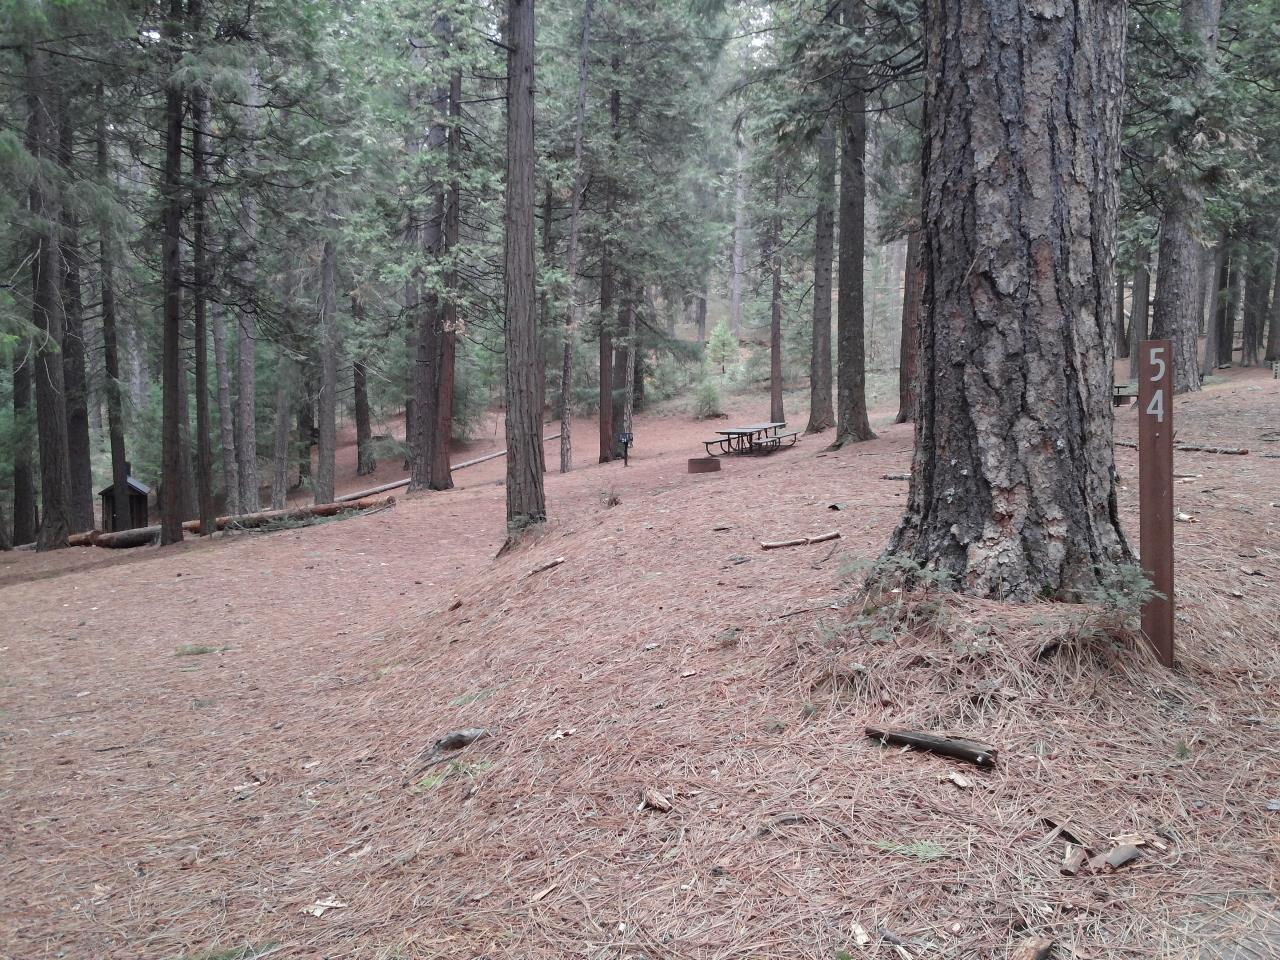 Sierra Spur site #54 - 3 vehicles or 24'MH - semi-shade, level, tight entrance due to trees